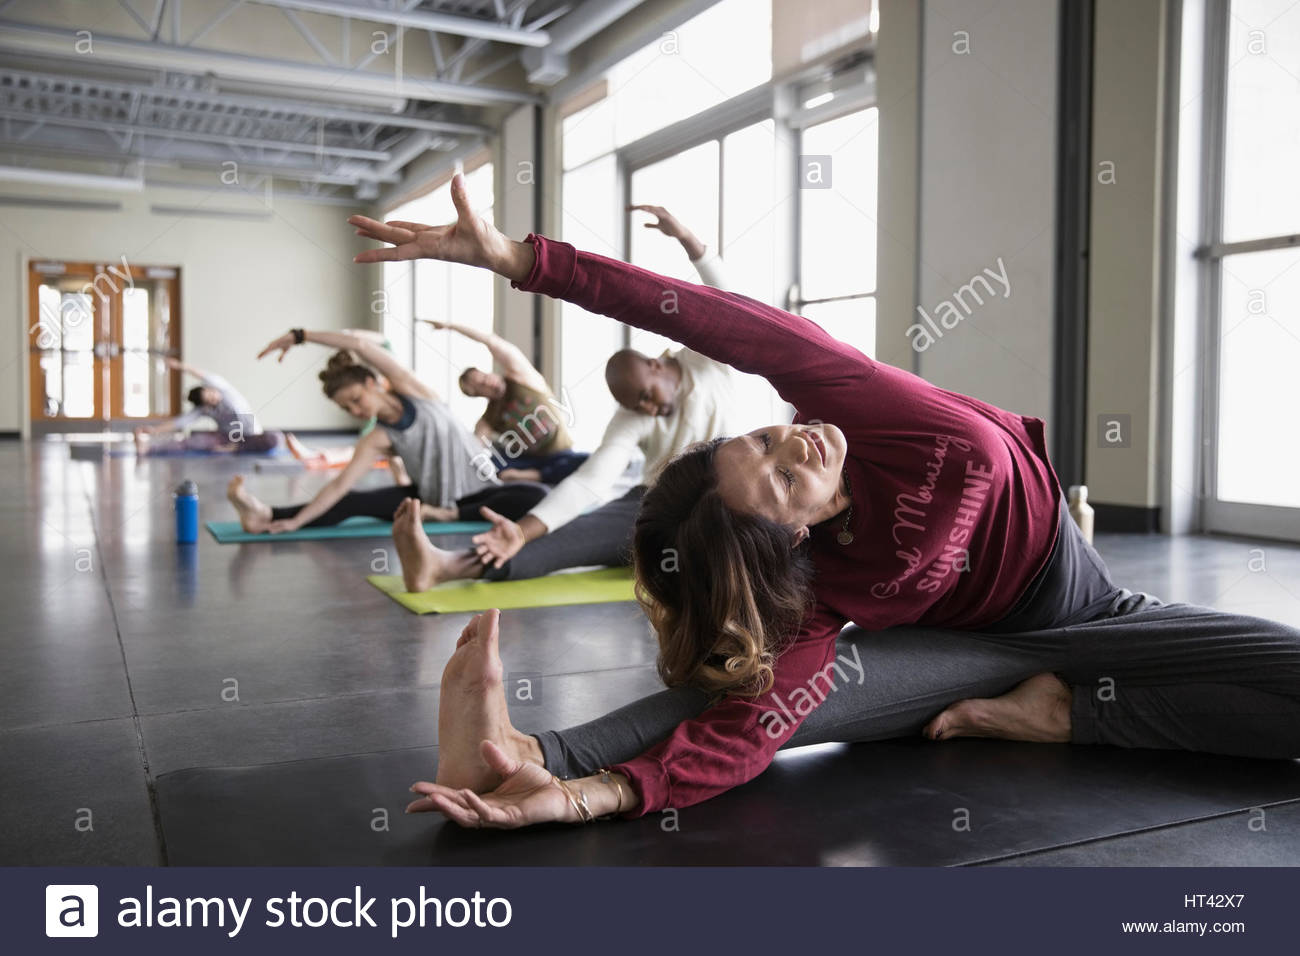 Woman practicing wide legged seated side bend in yoga class studio - Stock Image